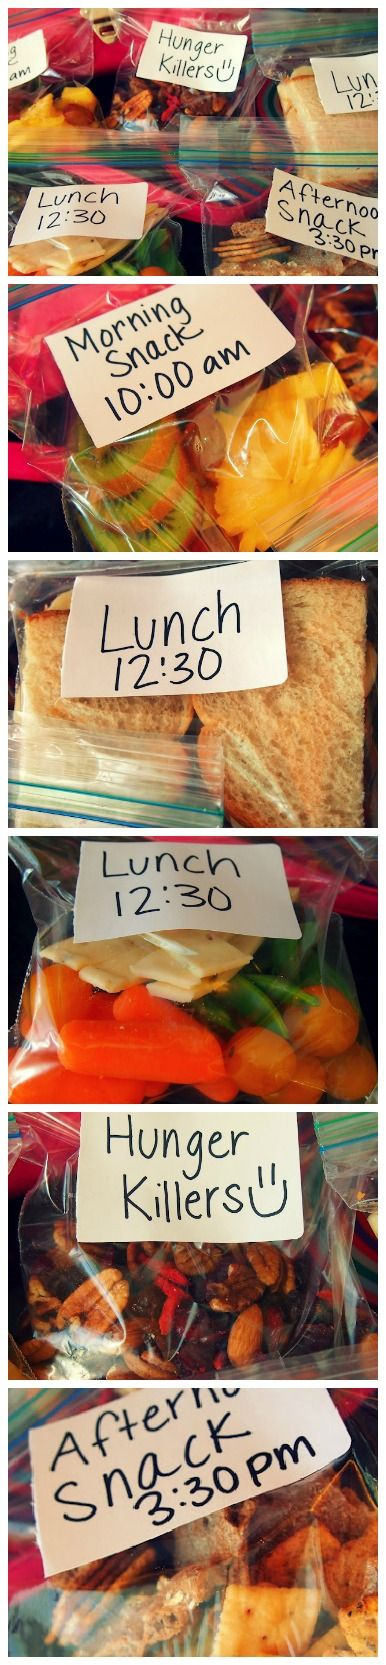 Great idea to label snacks. Food prep is a key step to